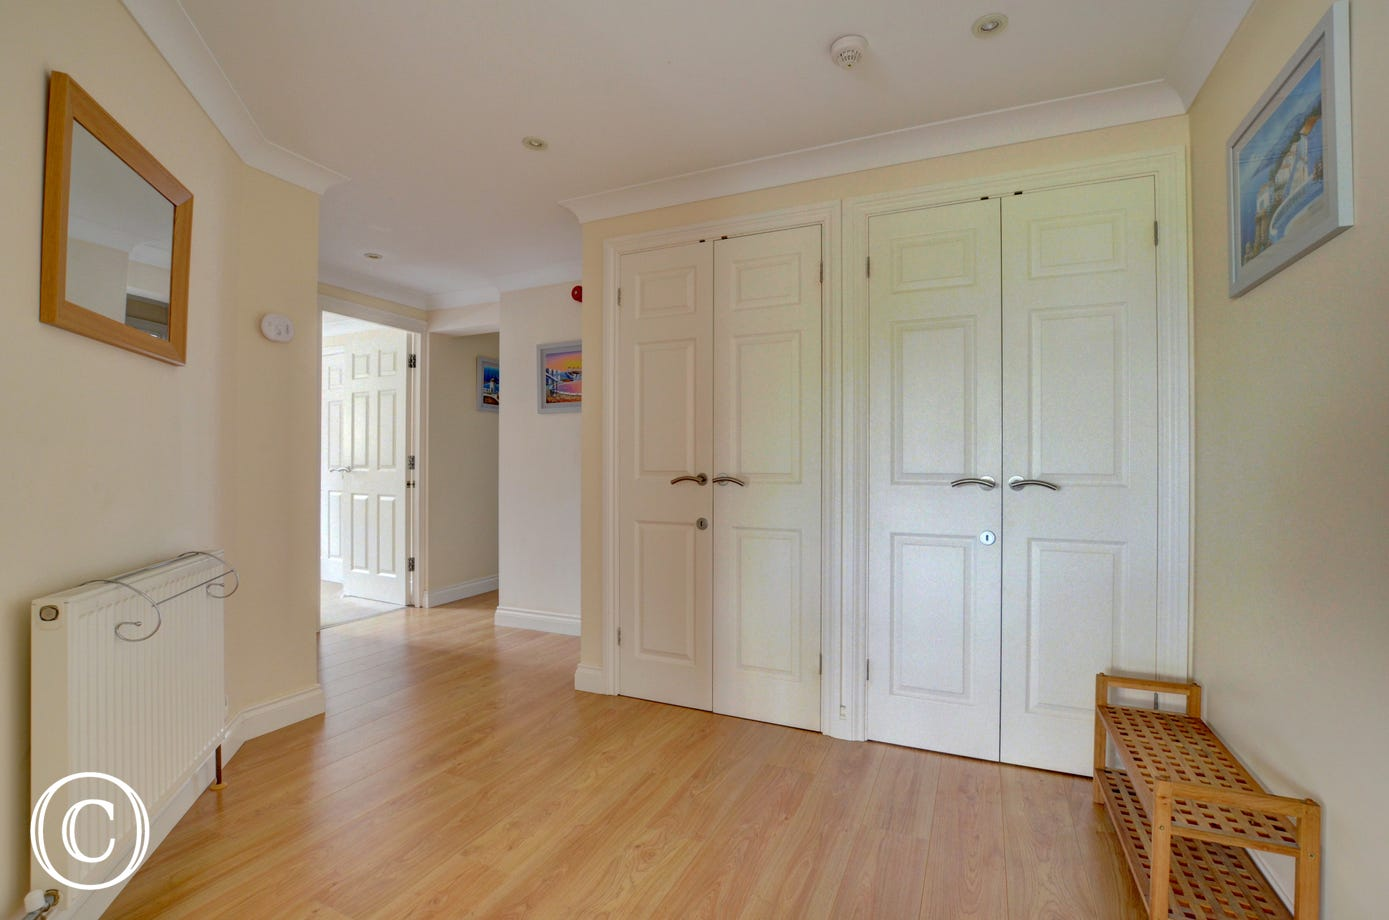 The hall leads into a very spacious open plan living room with stylish kitchen and dining area